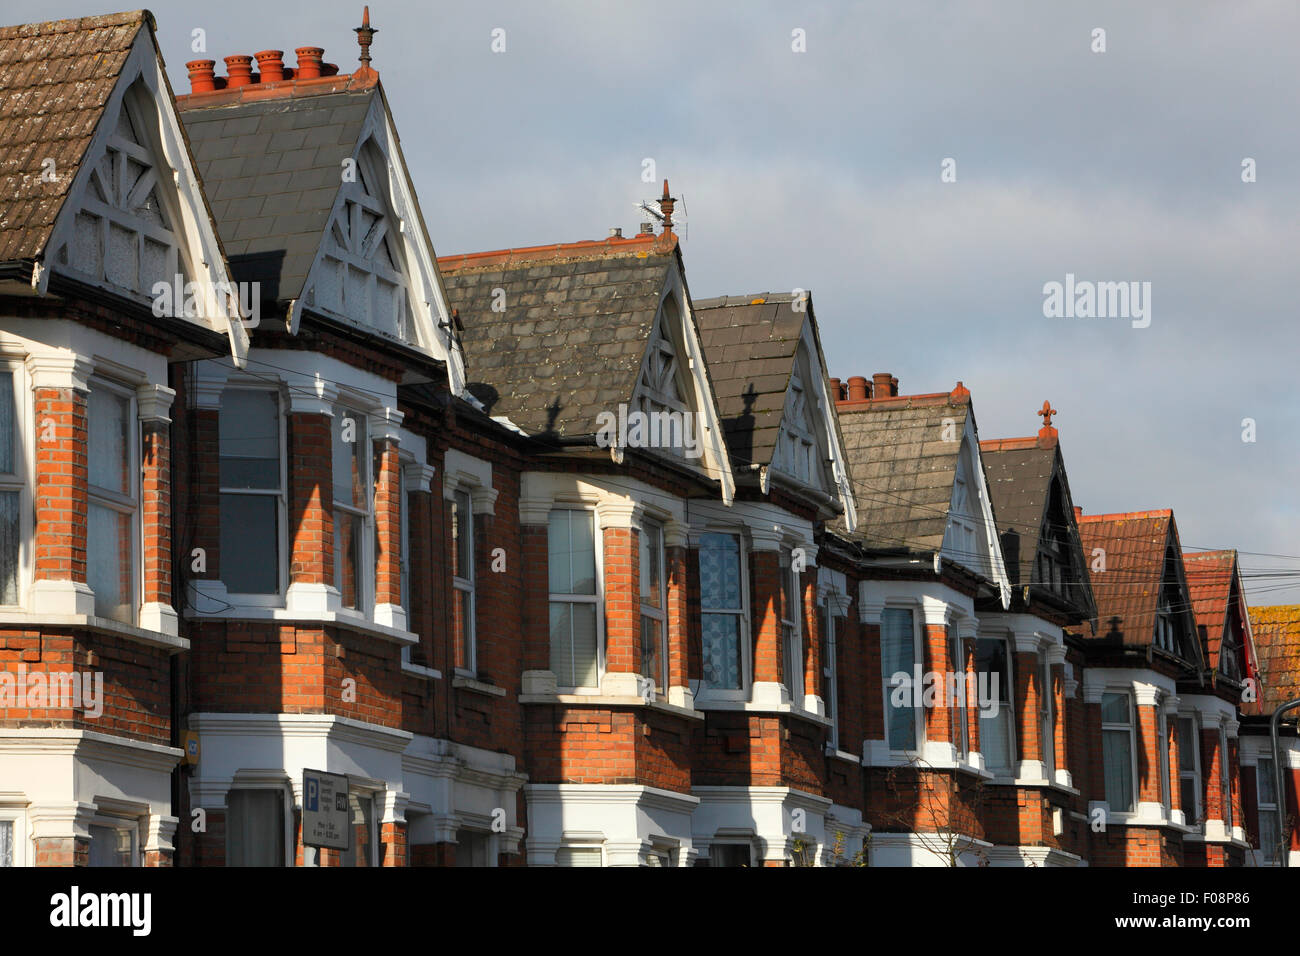 UK, London, Harlesden, Terrenced Housing in a residential street.  Photo: ©  Zute Lightfoot - Stock Image